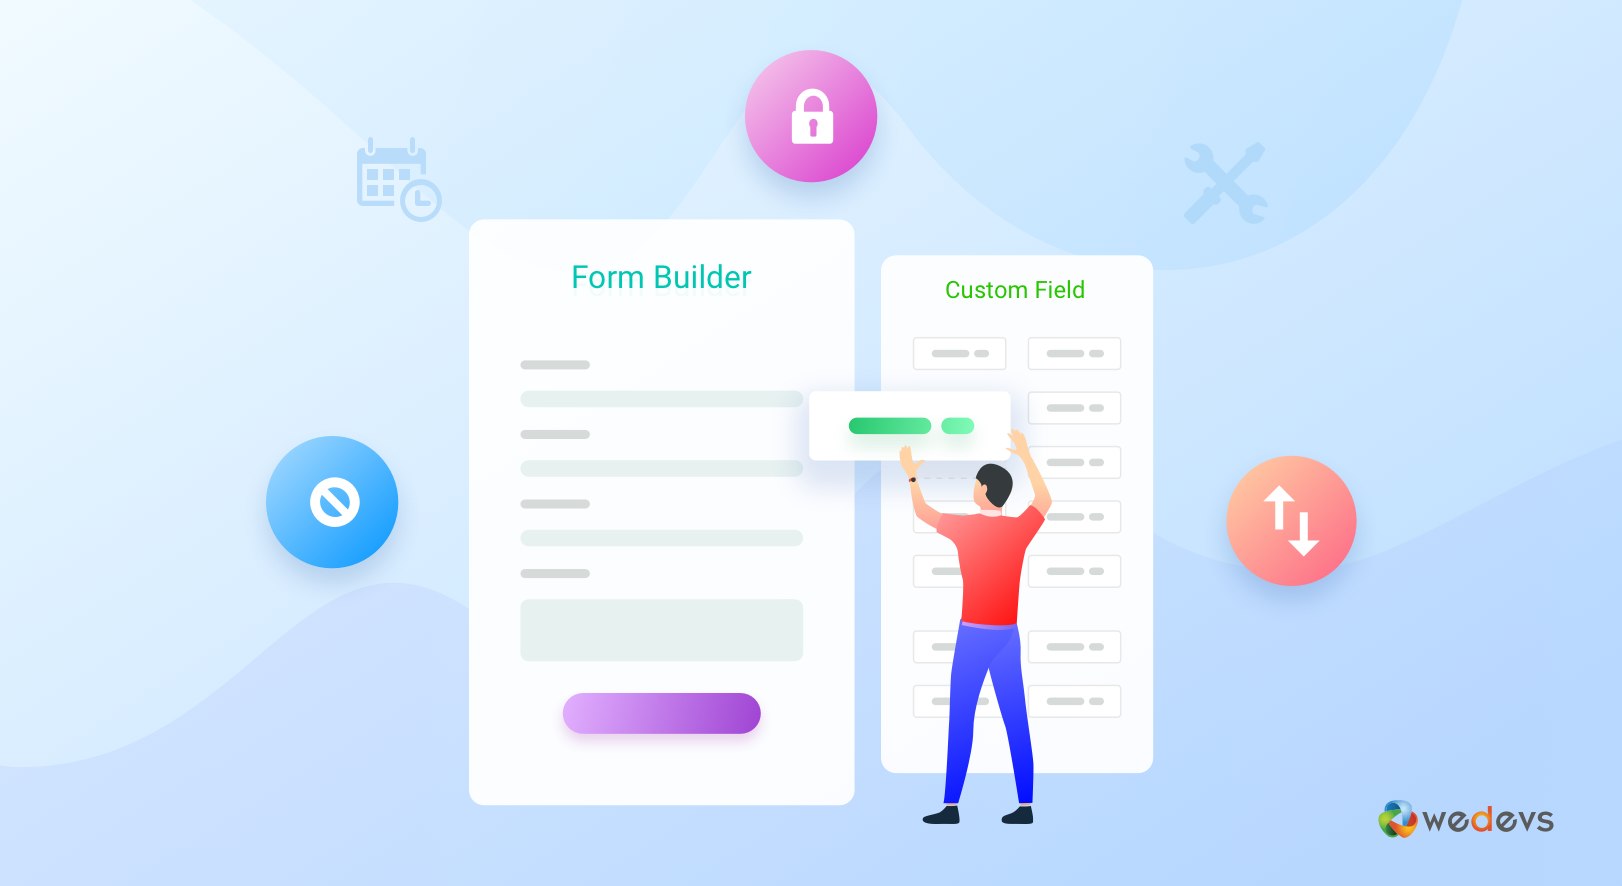 Most Useful Way A WordPress Contact Form Builder Should Perform in 2020